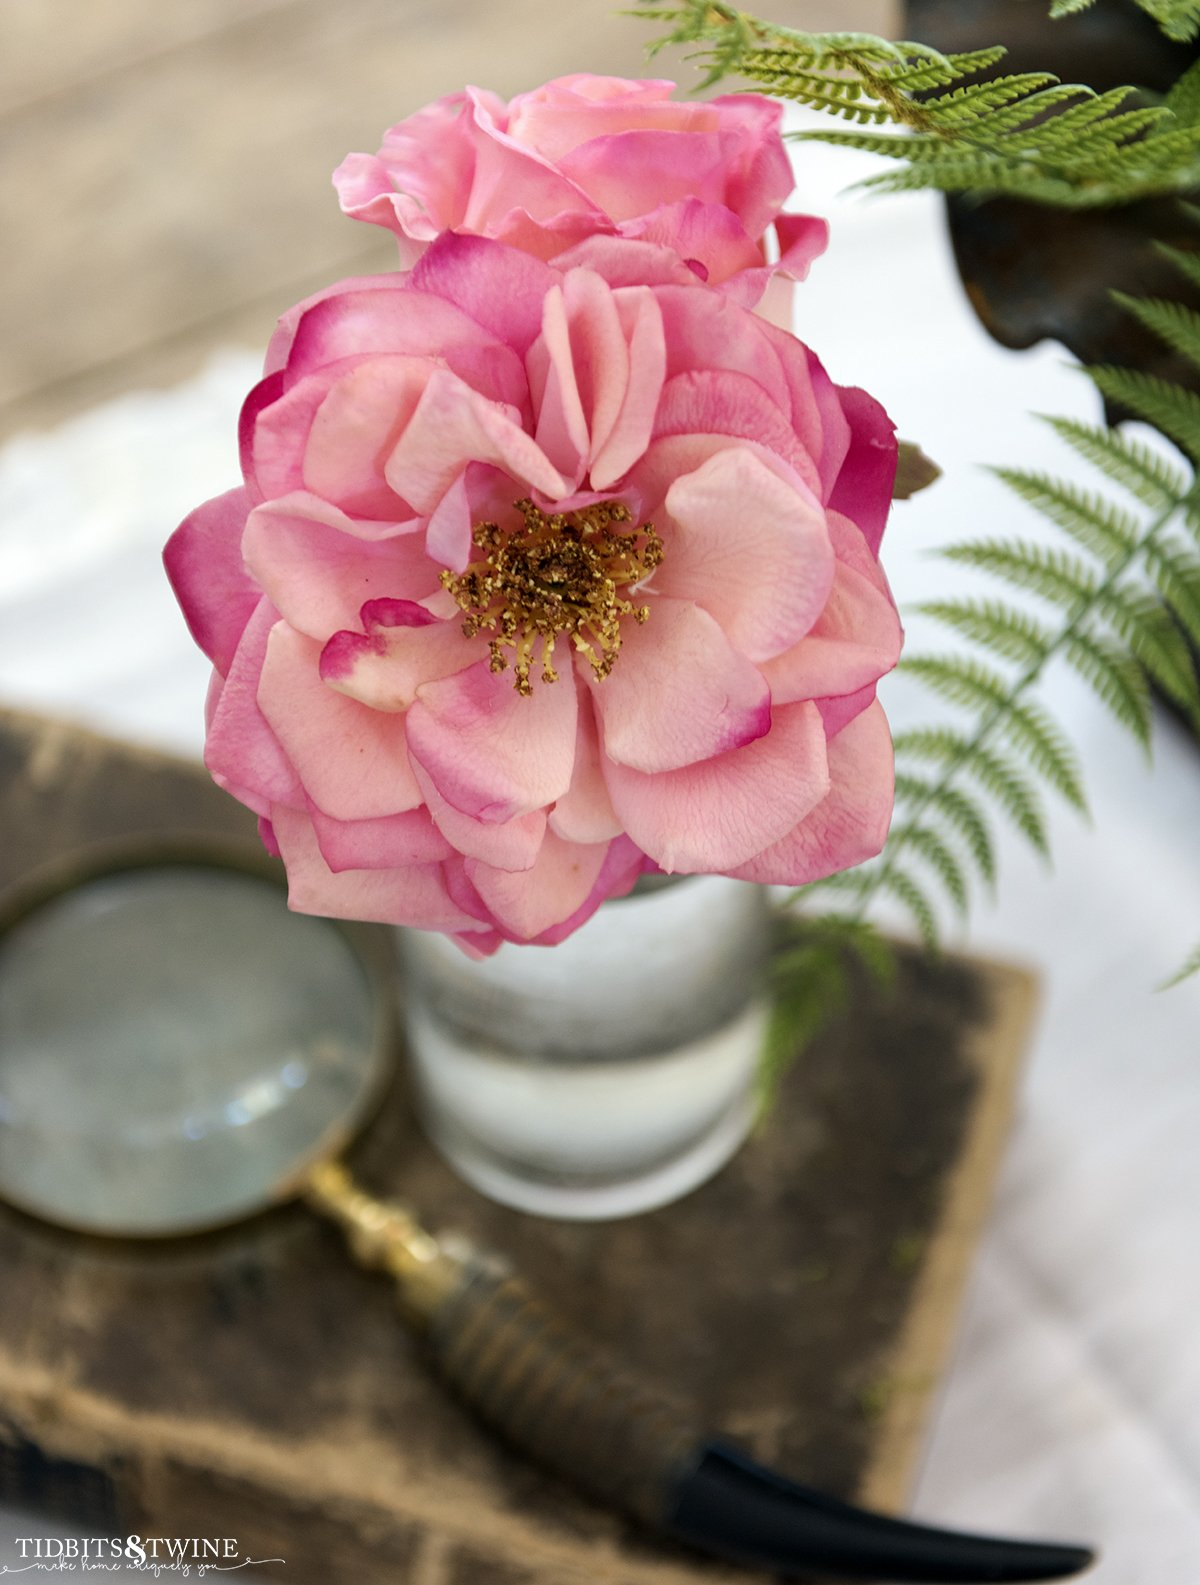 Closeup of a pink fake rose with yellow pollen center with an old book and magnifying glass in the background and a fern leaf